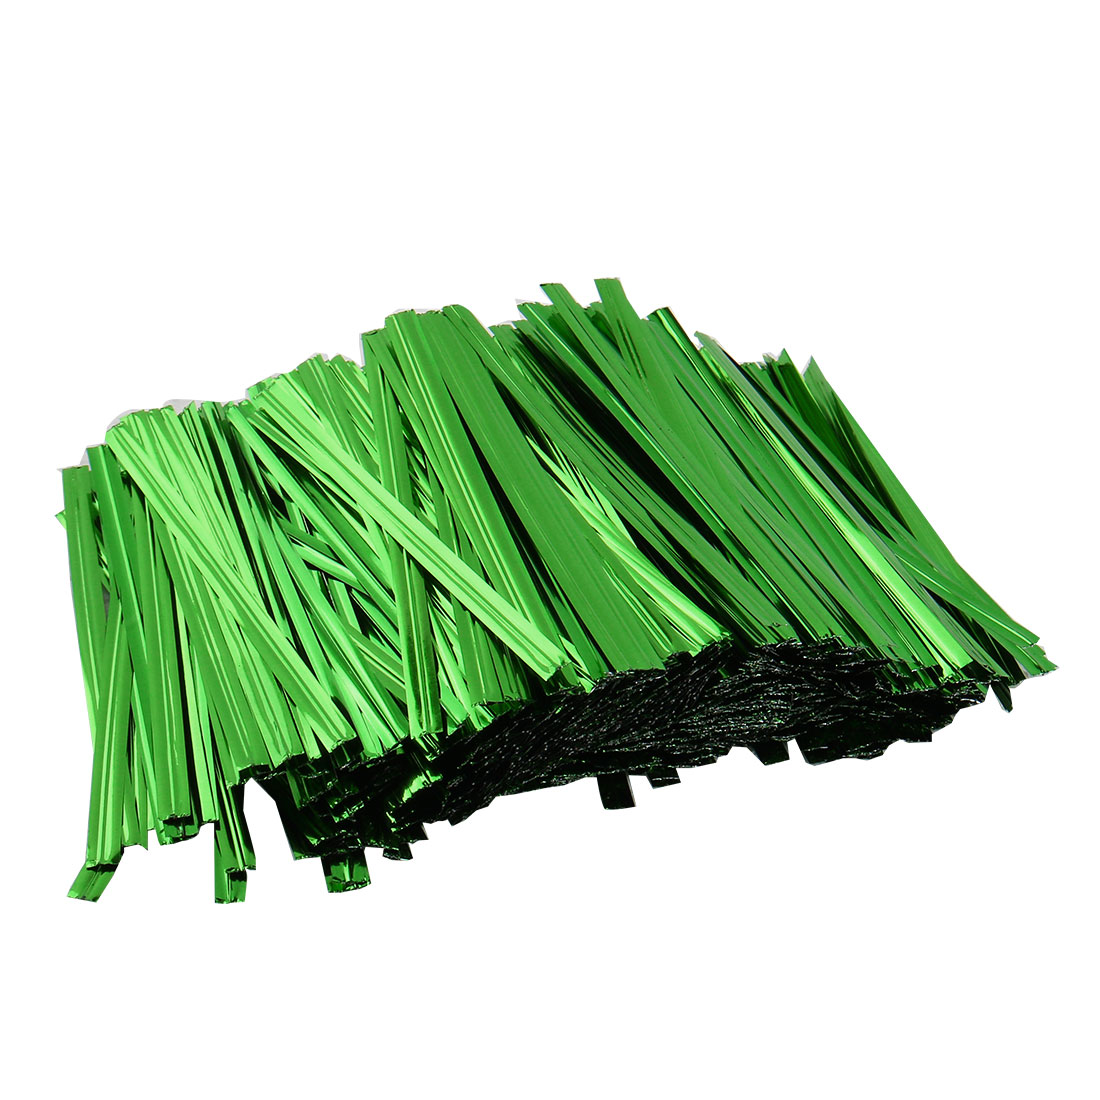 1600 Pcs Green 8cm Length Candy Bread Bags Packaging Twist Cable Tie